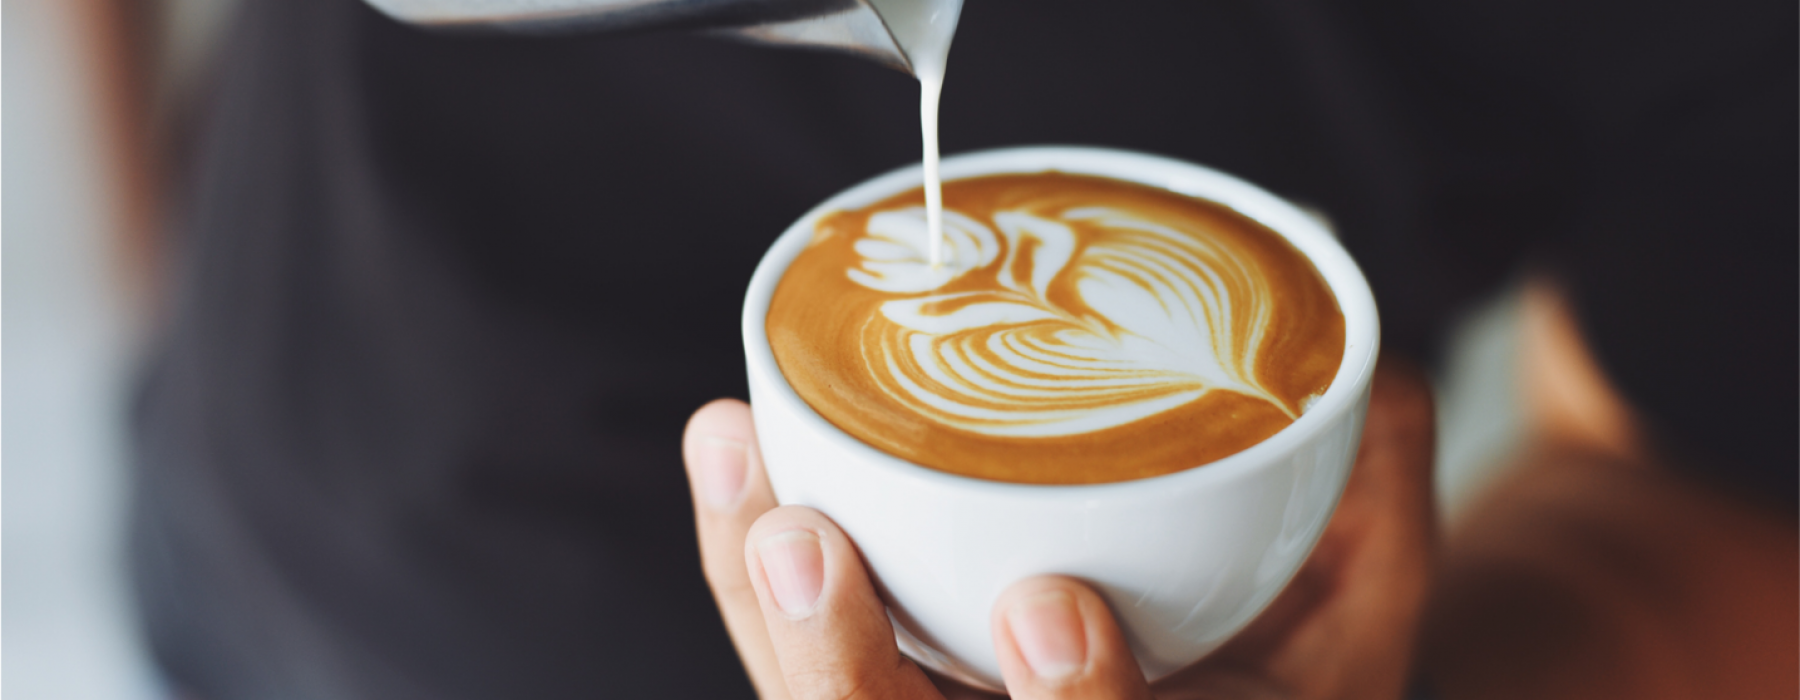 White mug with latte art being poured